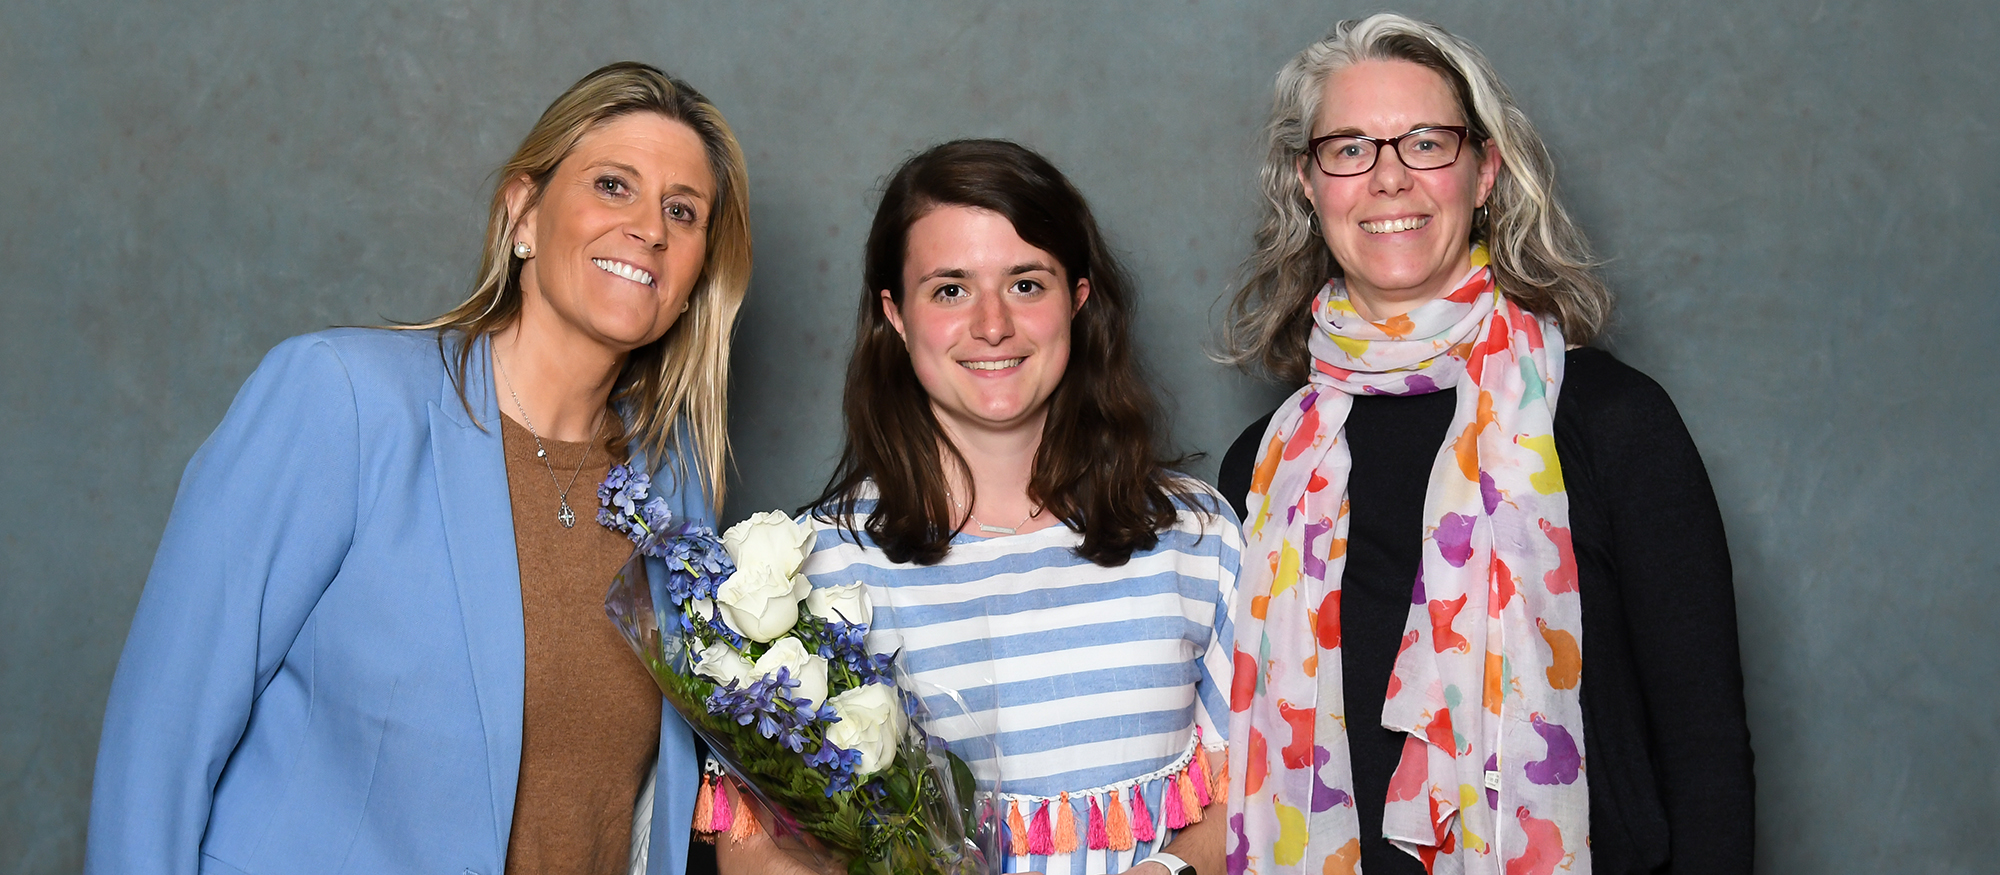 2019 Laurie Priest Alumnae Association Scholar Athlete recipient, senior field hockey captain Mirjam Keochakian (center), with head coach Andy Whitcomb (left) and Jen Grow '94, from the MHC Alumnae Association (right).